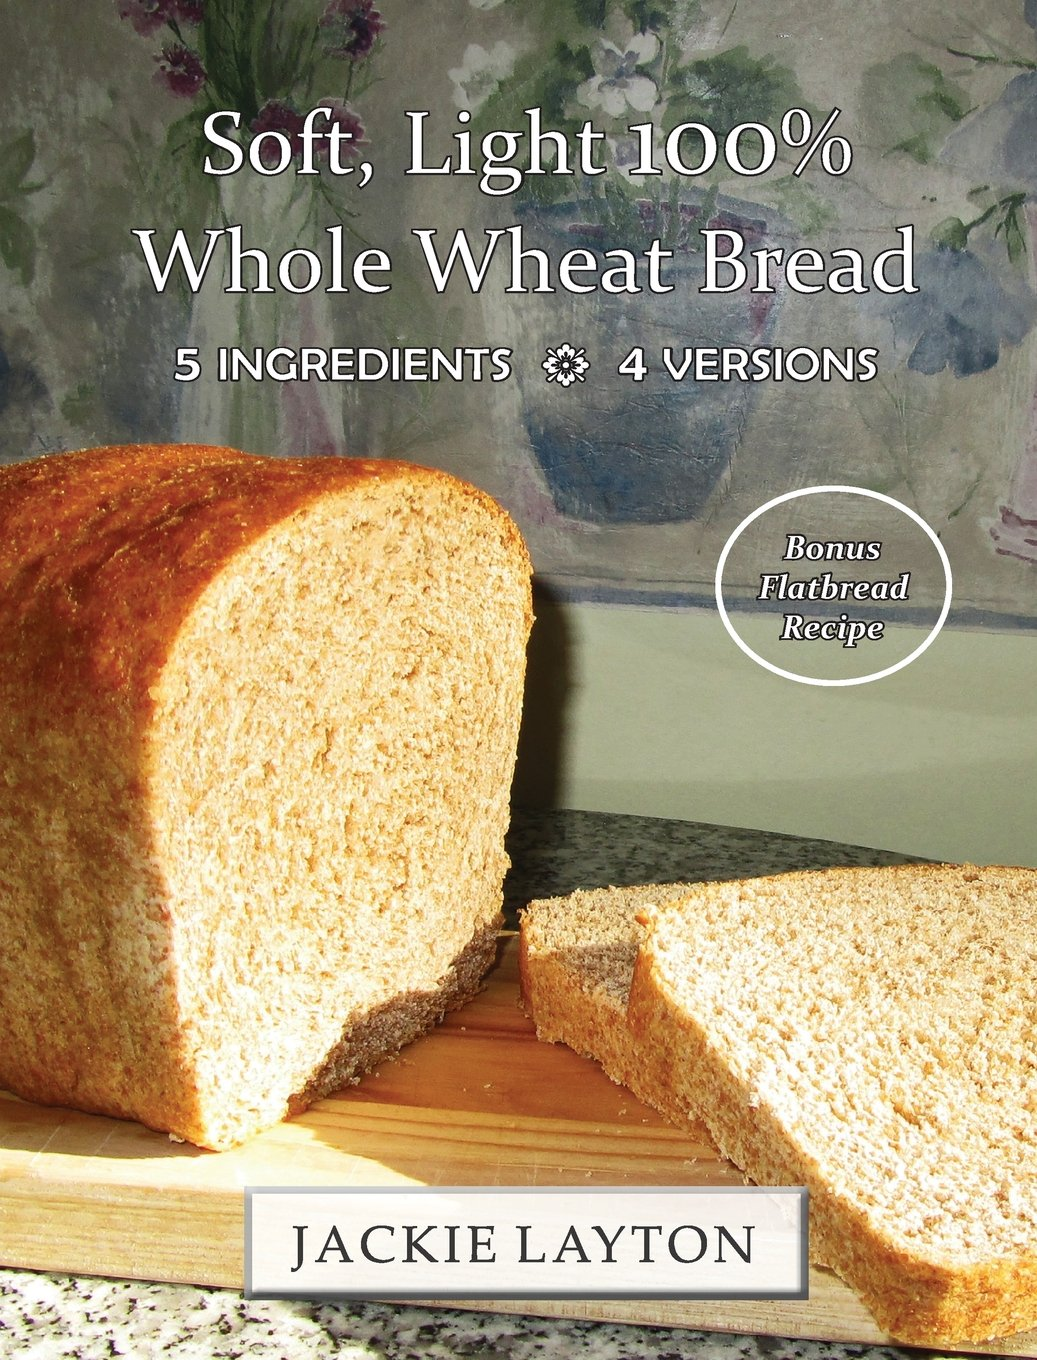 Soft, Light 100% Whole Wheat Bread: 5 ingredients, 4 versions by Well Options